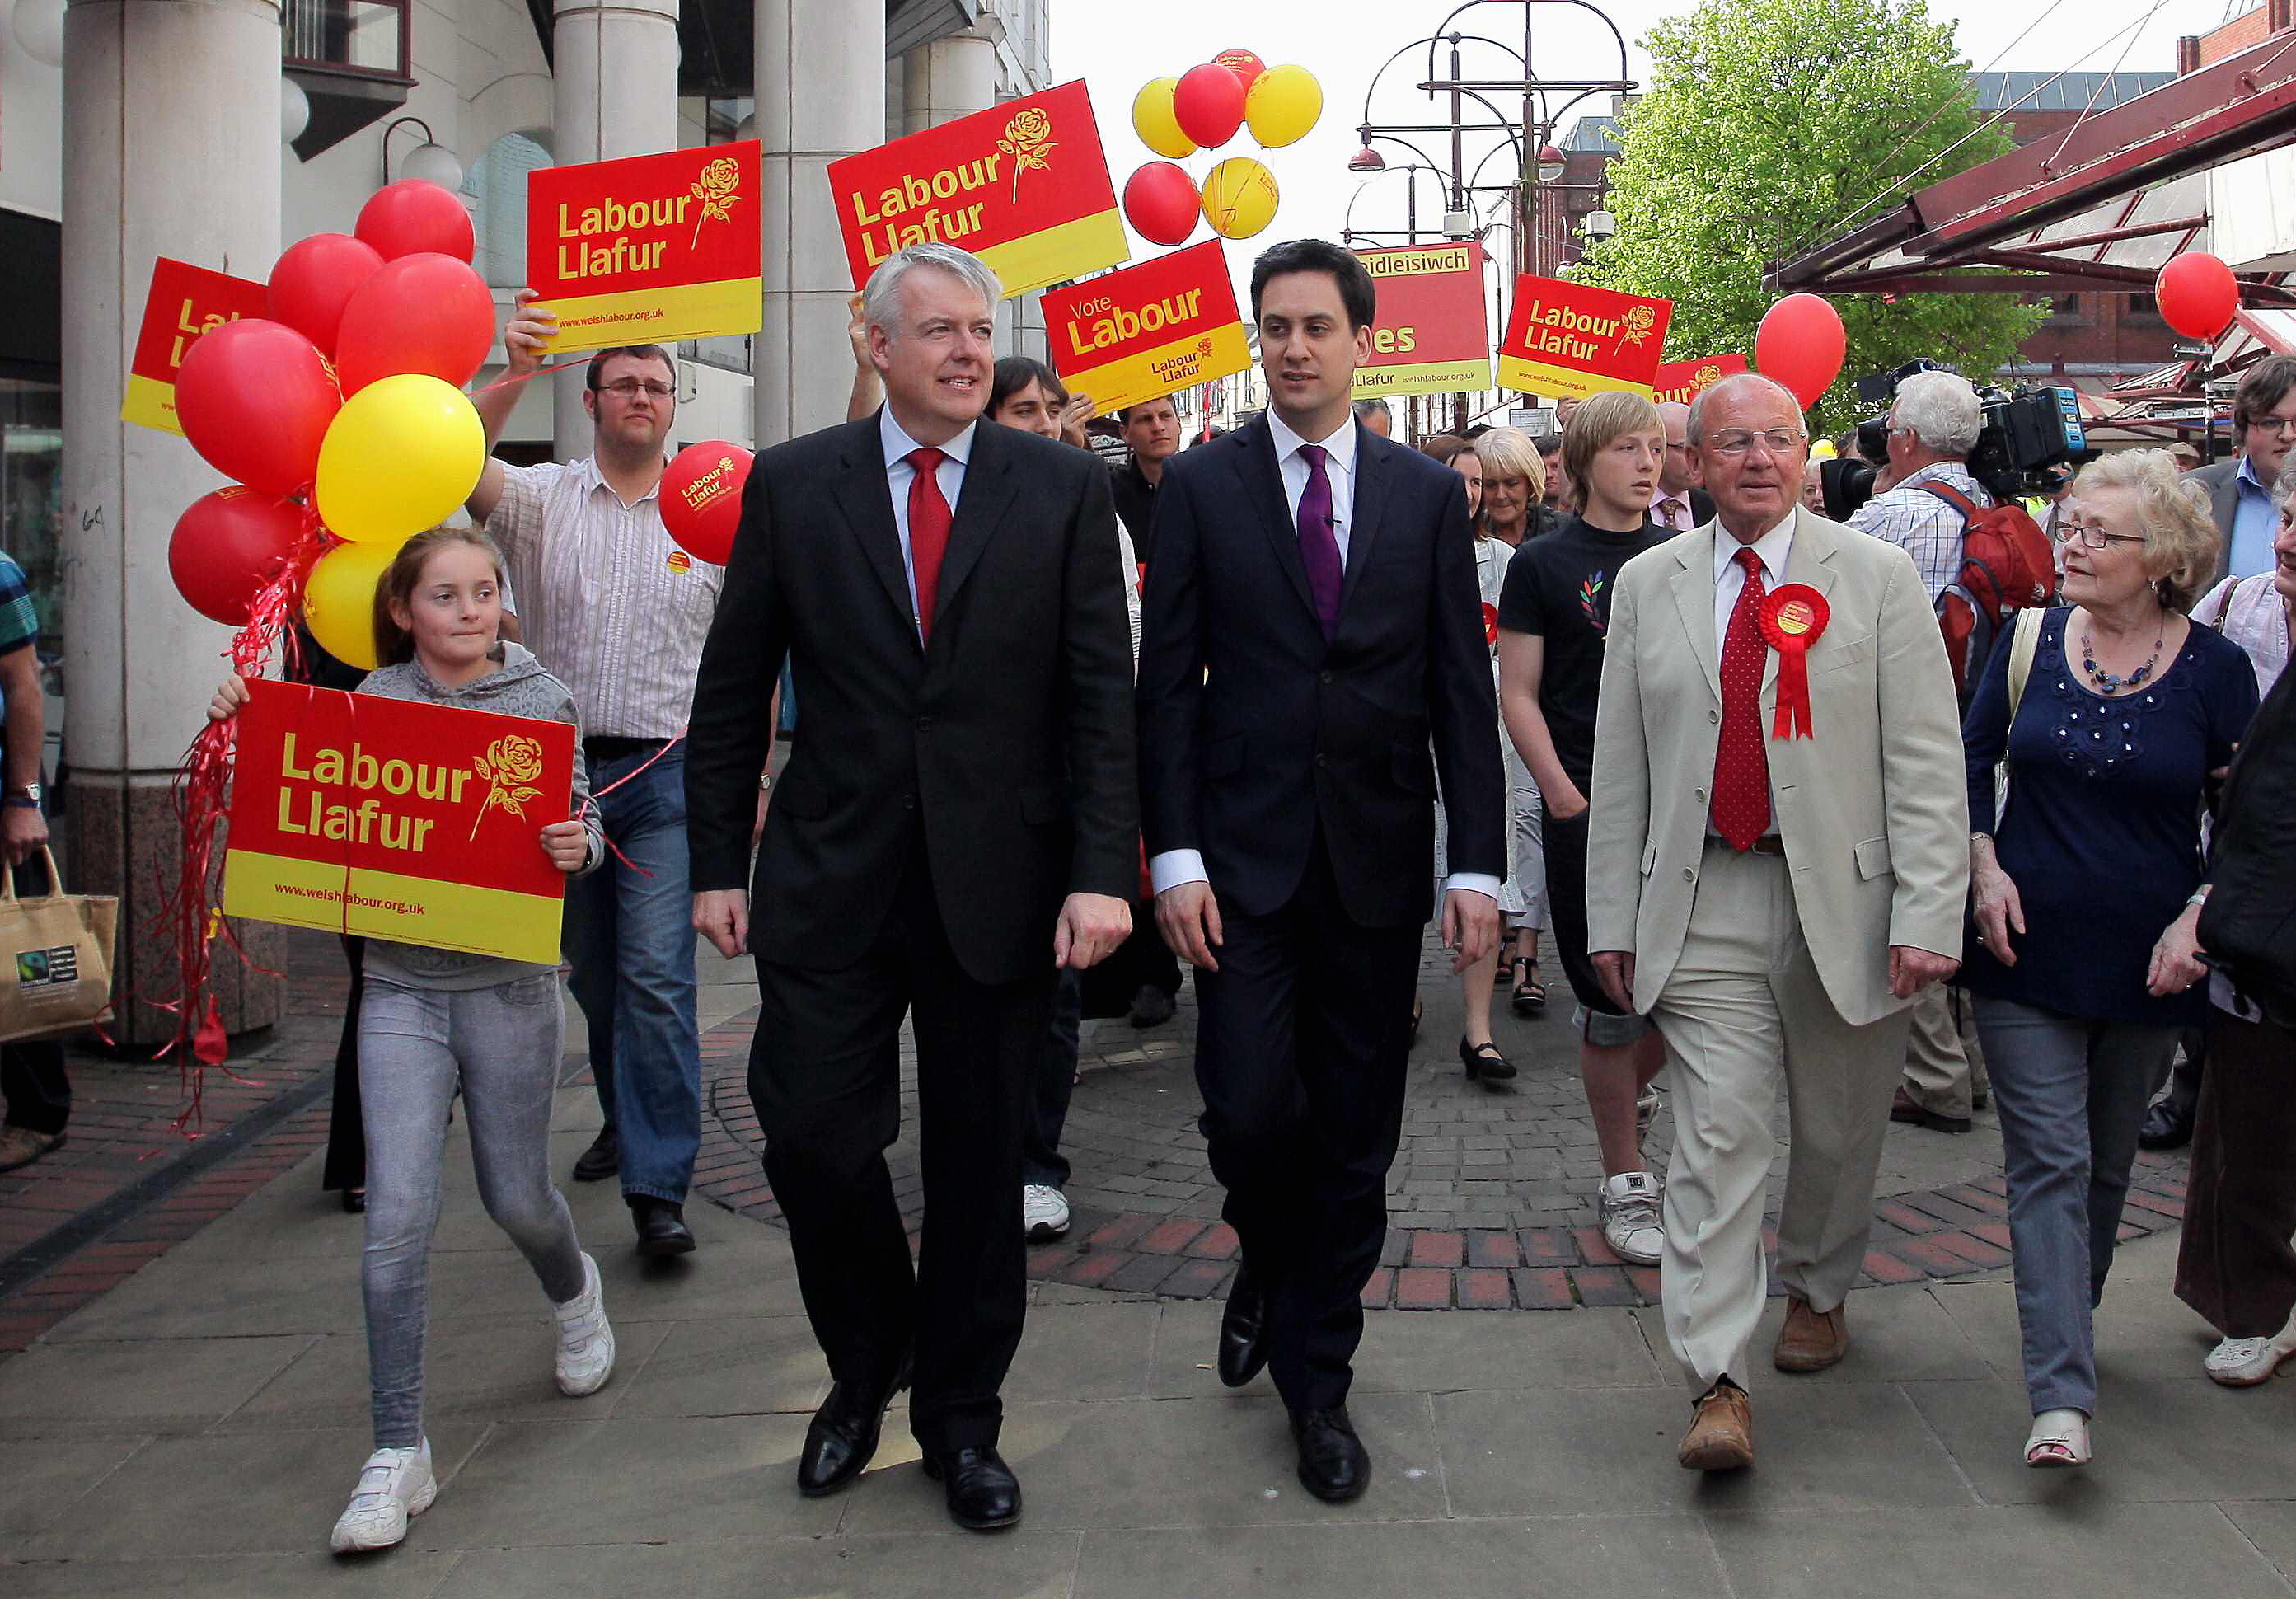 Pictured: Labour leader Ed Miliband (C) strolls through Llanelli town centre with First Minister for Wales Carwyn Jones (L) and Welsh Assembly candidate for Llanelli Keith Davies (R). Wednesday 20 April 2011 Re: Labour Party leader Ed Miliband was touring south and west Wales today in support to candidates of the forthcoming Welsh Assembly election in May. He arrived by train to Swansea Railway Station where he was greeted by MP for Neath Peter Hain and he was then driven to Llanelli, Carmarthenshire where he toured in the city's enclosed market with local Labour candidate.